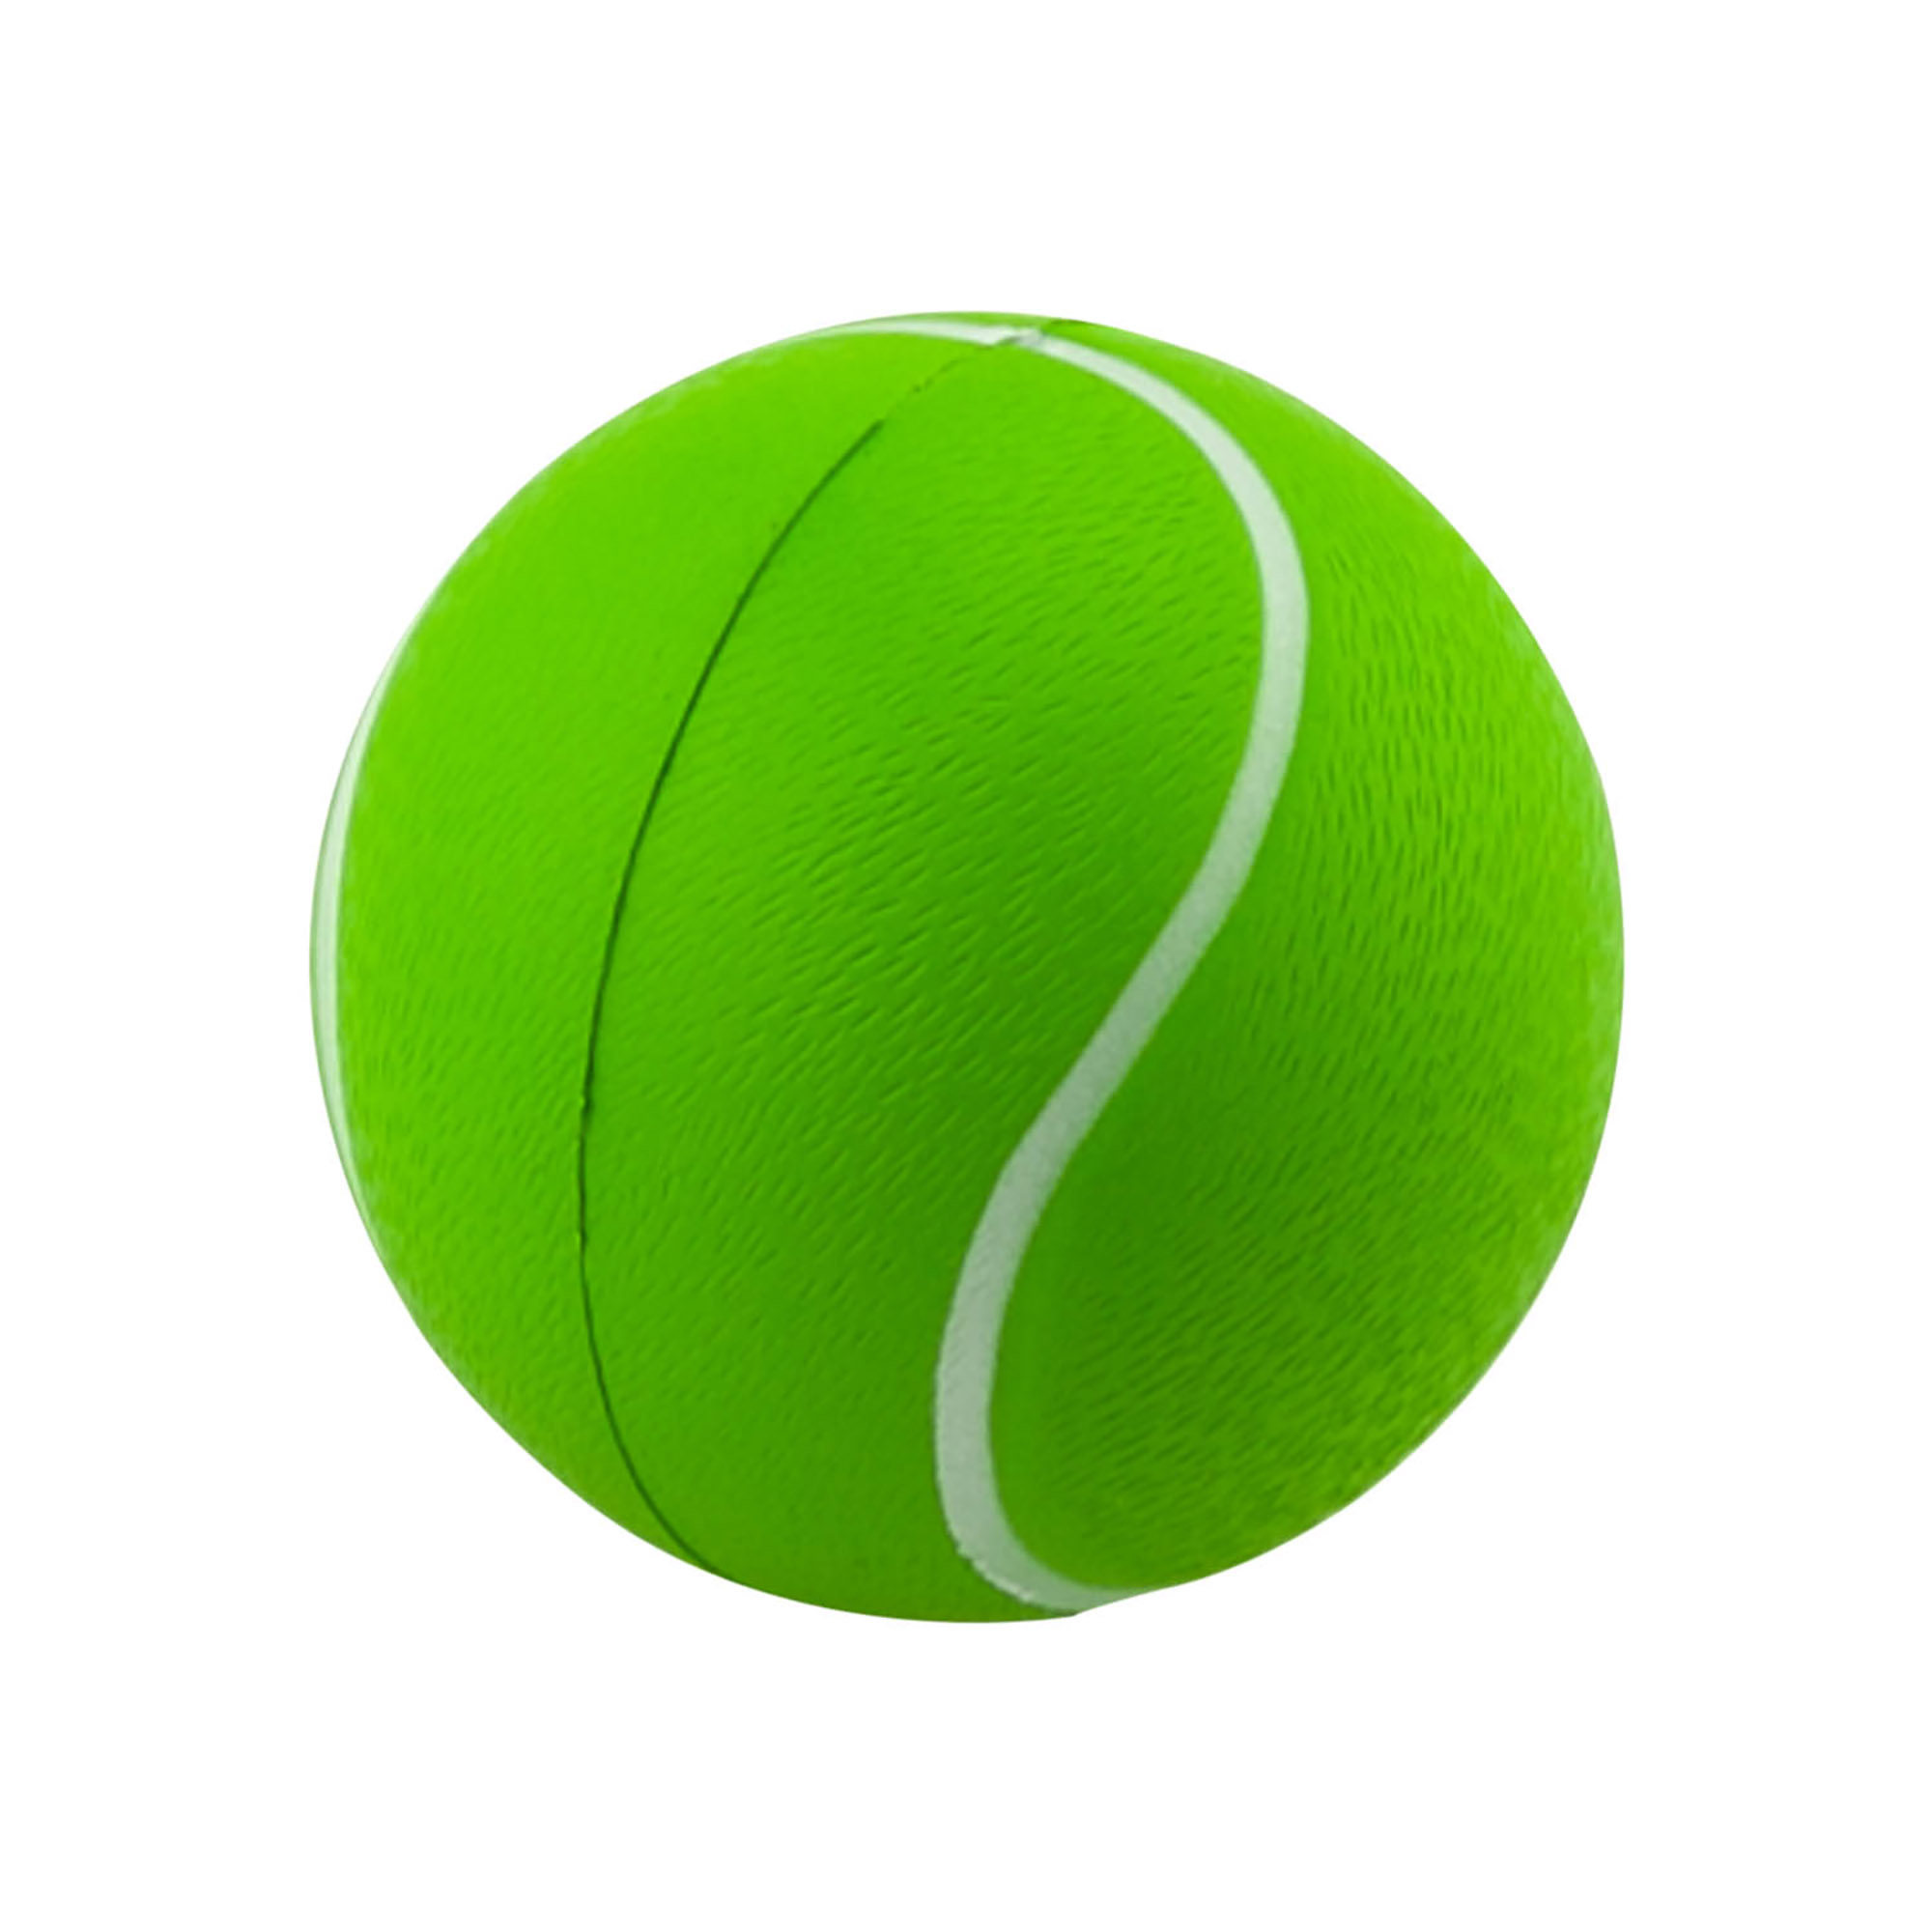 STRESS TENNIS BALL - 1 Colour Print